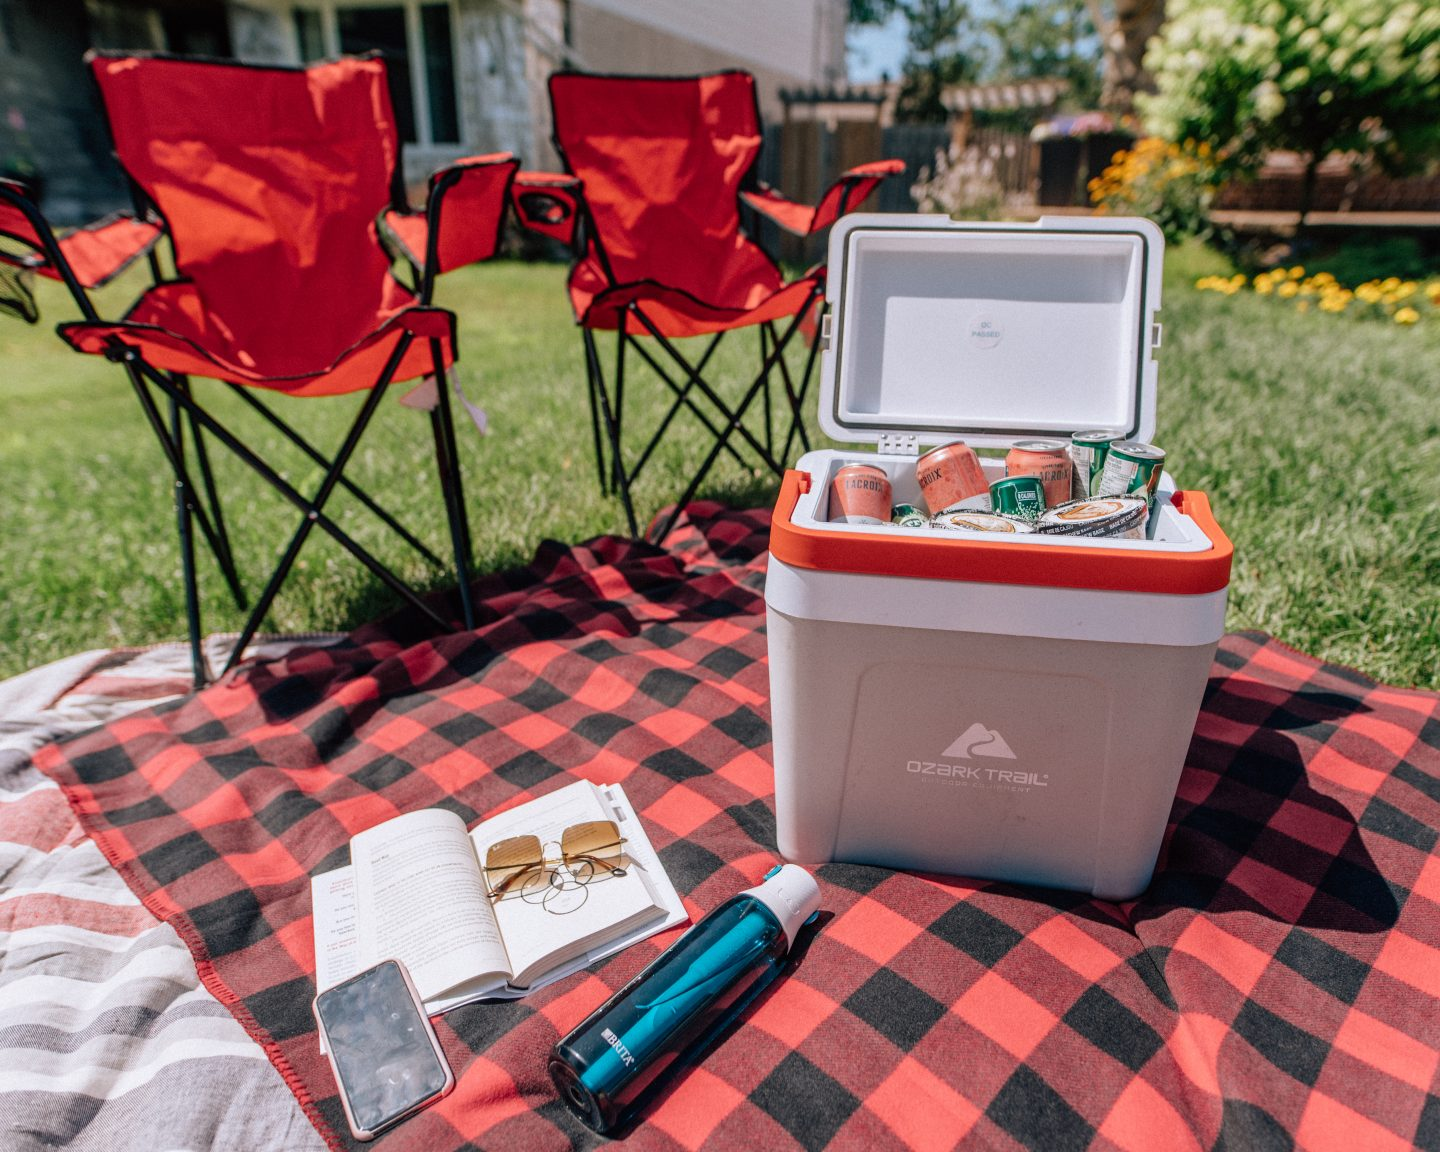 Ozark Trail Cooler from Walmart